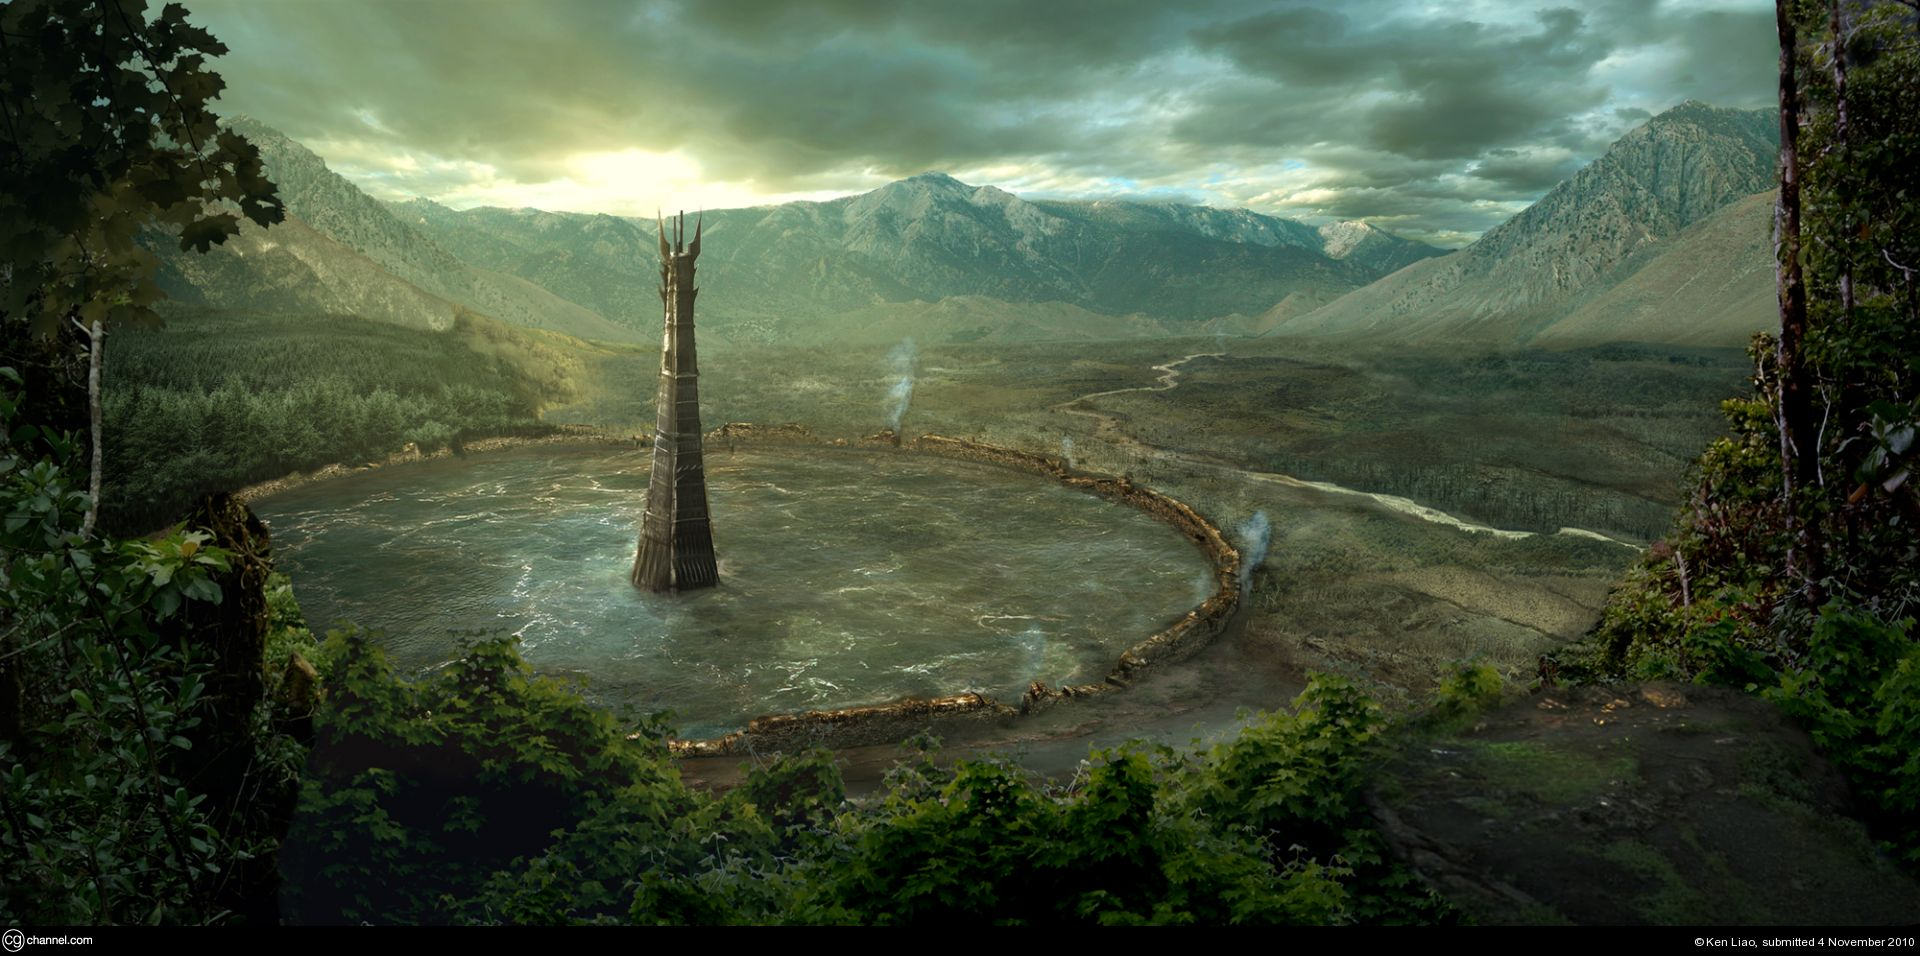 http://img4.wikia.nocookie.net/__cb20120606113627/lotr/images/4/42/Destruction_of_Isengard_-_Day_After.jpg